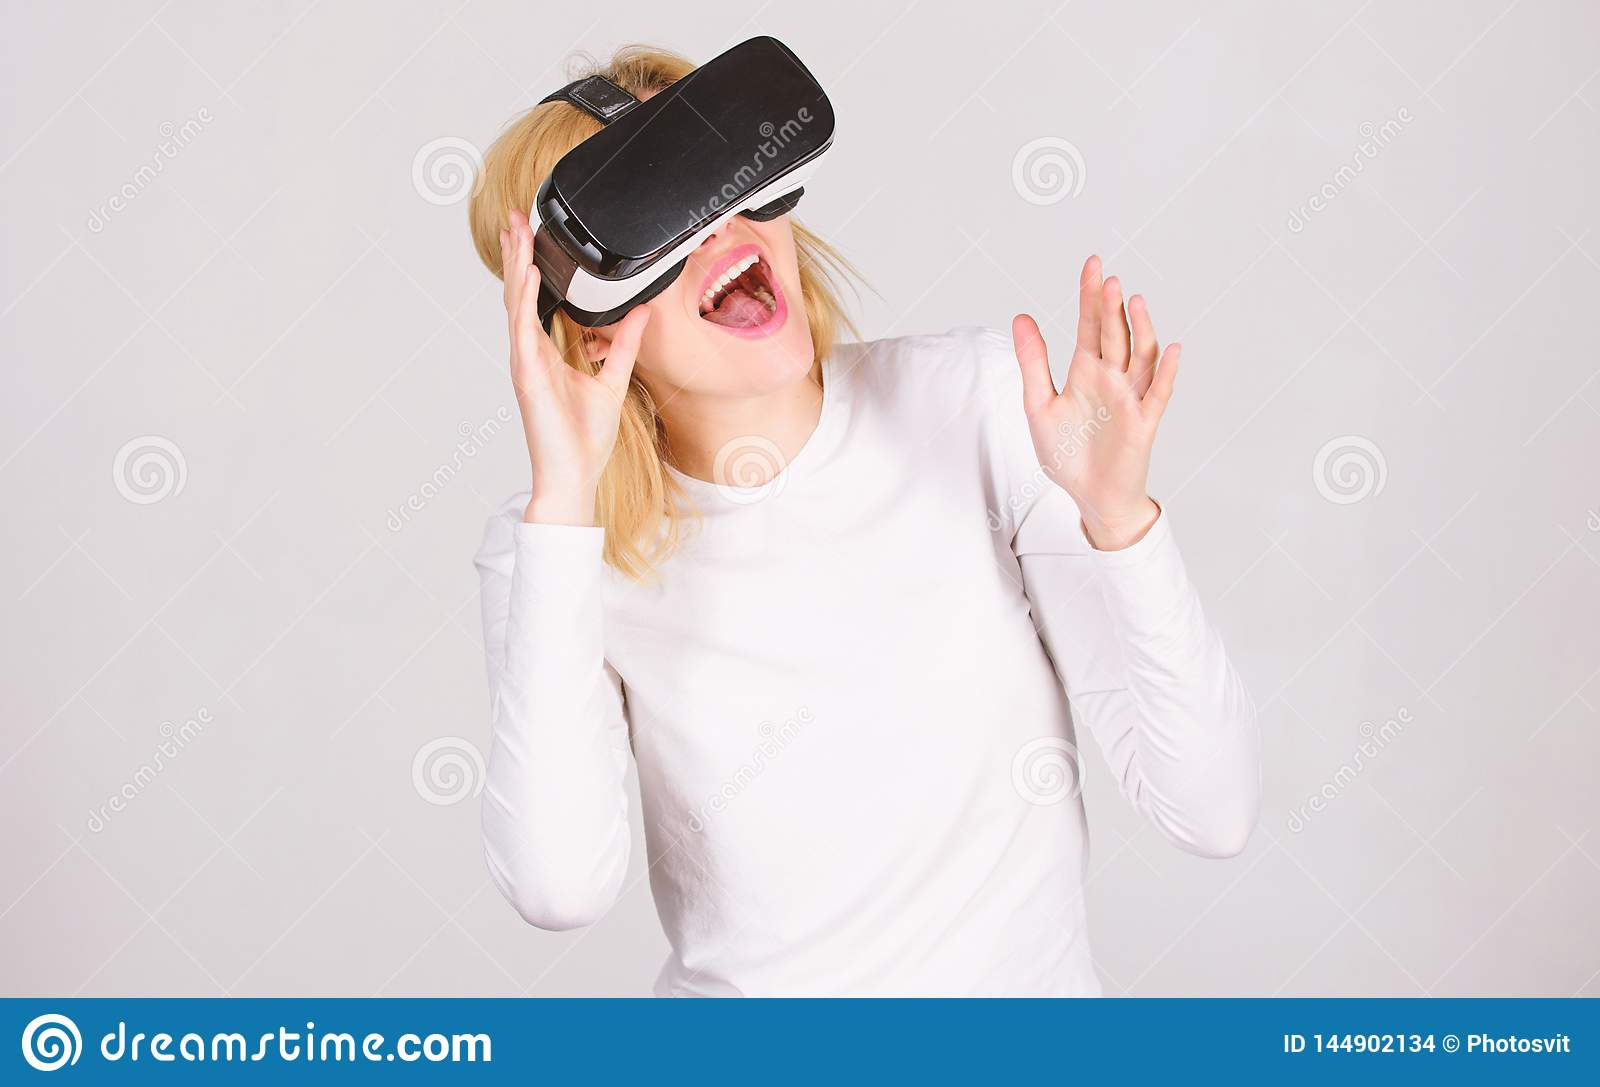 A person in virtual glasses flies in room space. Woman using VR device. Person with virtual reality helmet isolated on